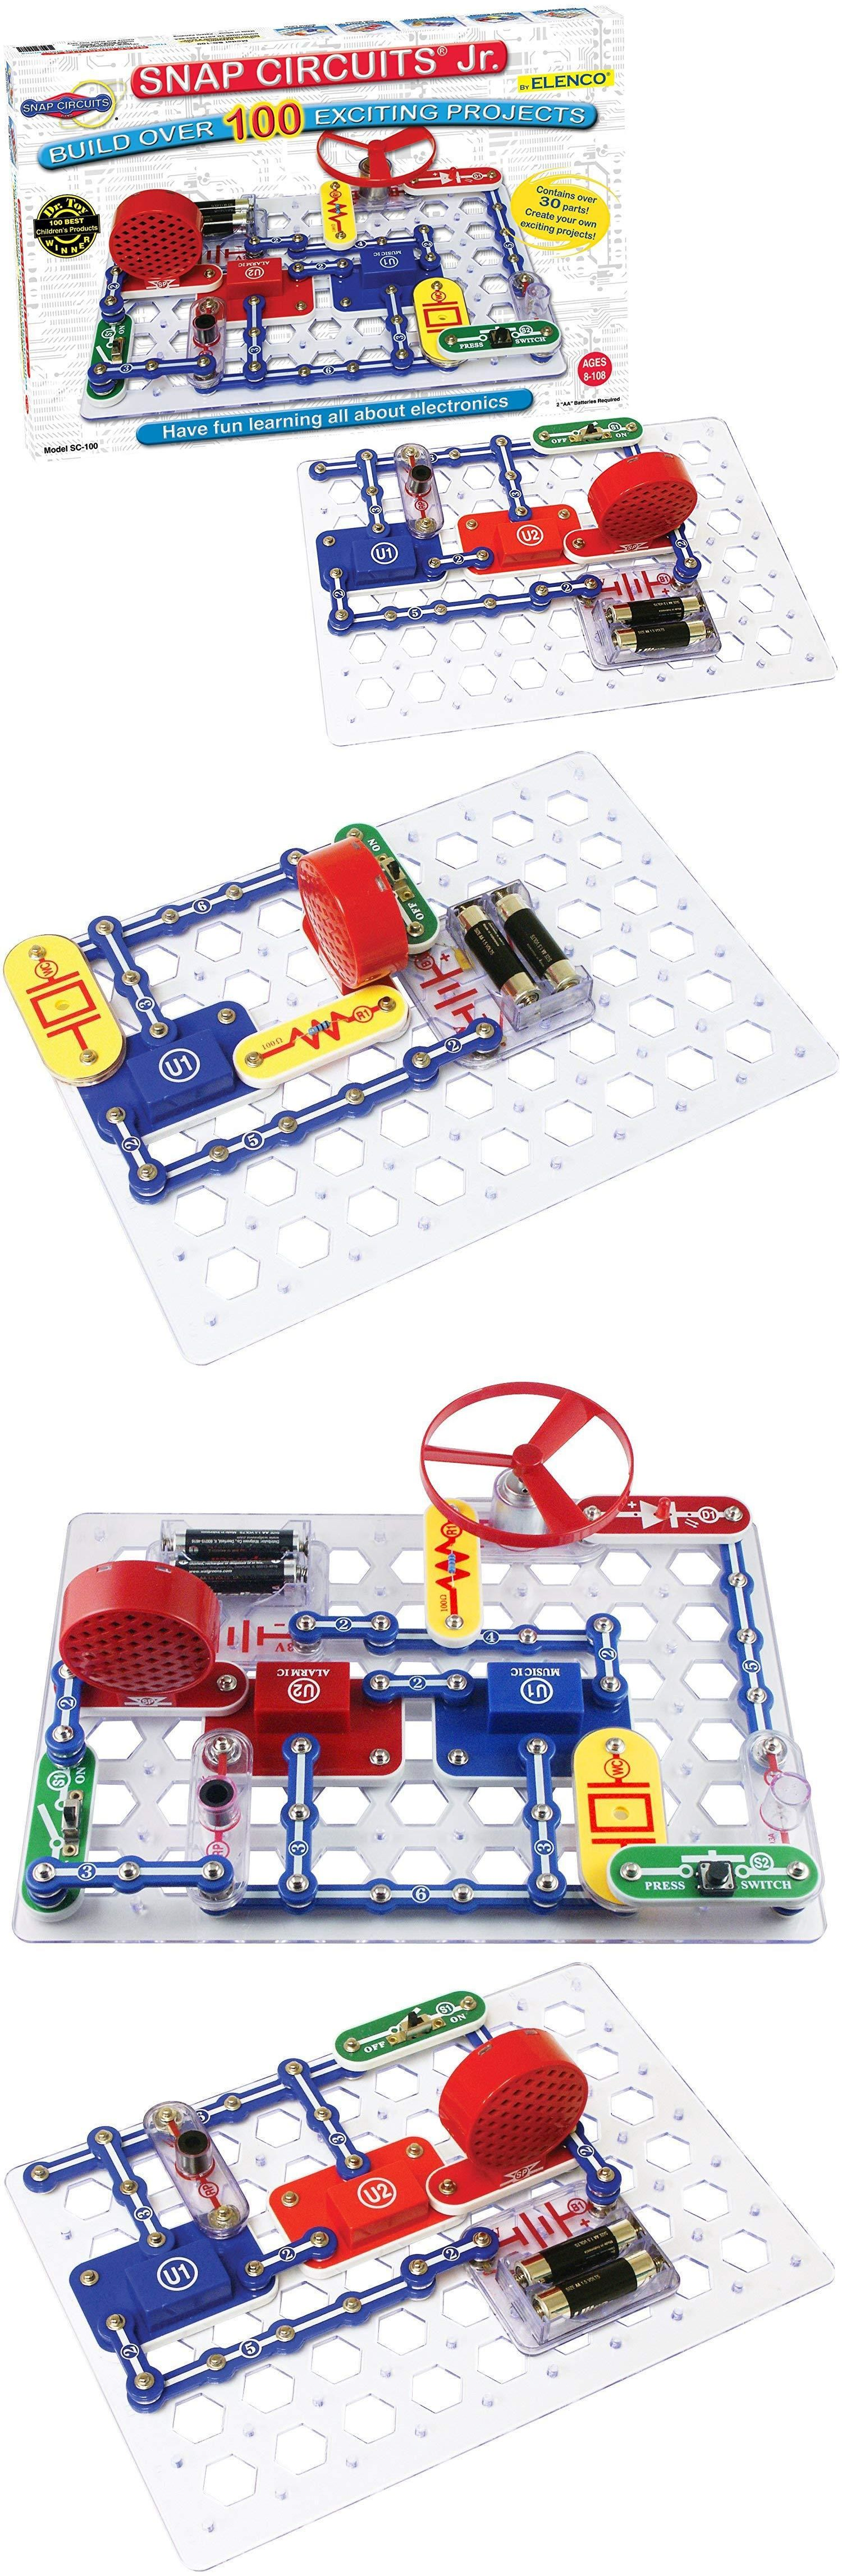 Science And Nature 31743 Electric Circuit Discovery Kit Fun Snap Circuits Fm Radio Ebay Creative Educational Building Toy For Kids